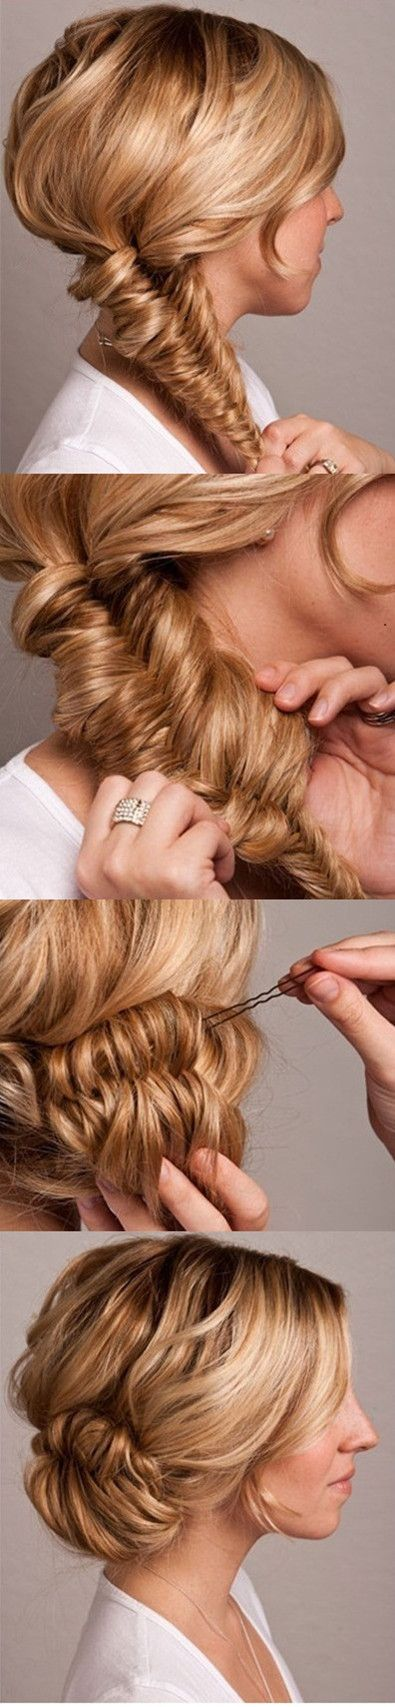 : Fish Tail, Hair Tutorials, Bridesmaid Hair, Tall Boots, Long Hair, Fishtail Buns, Fishtail Braids, Hair Style, Braids Buns